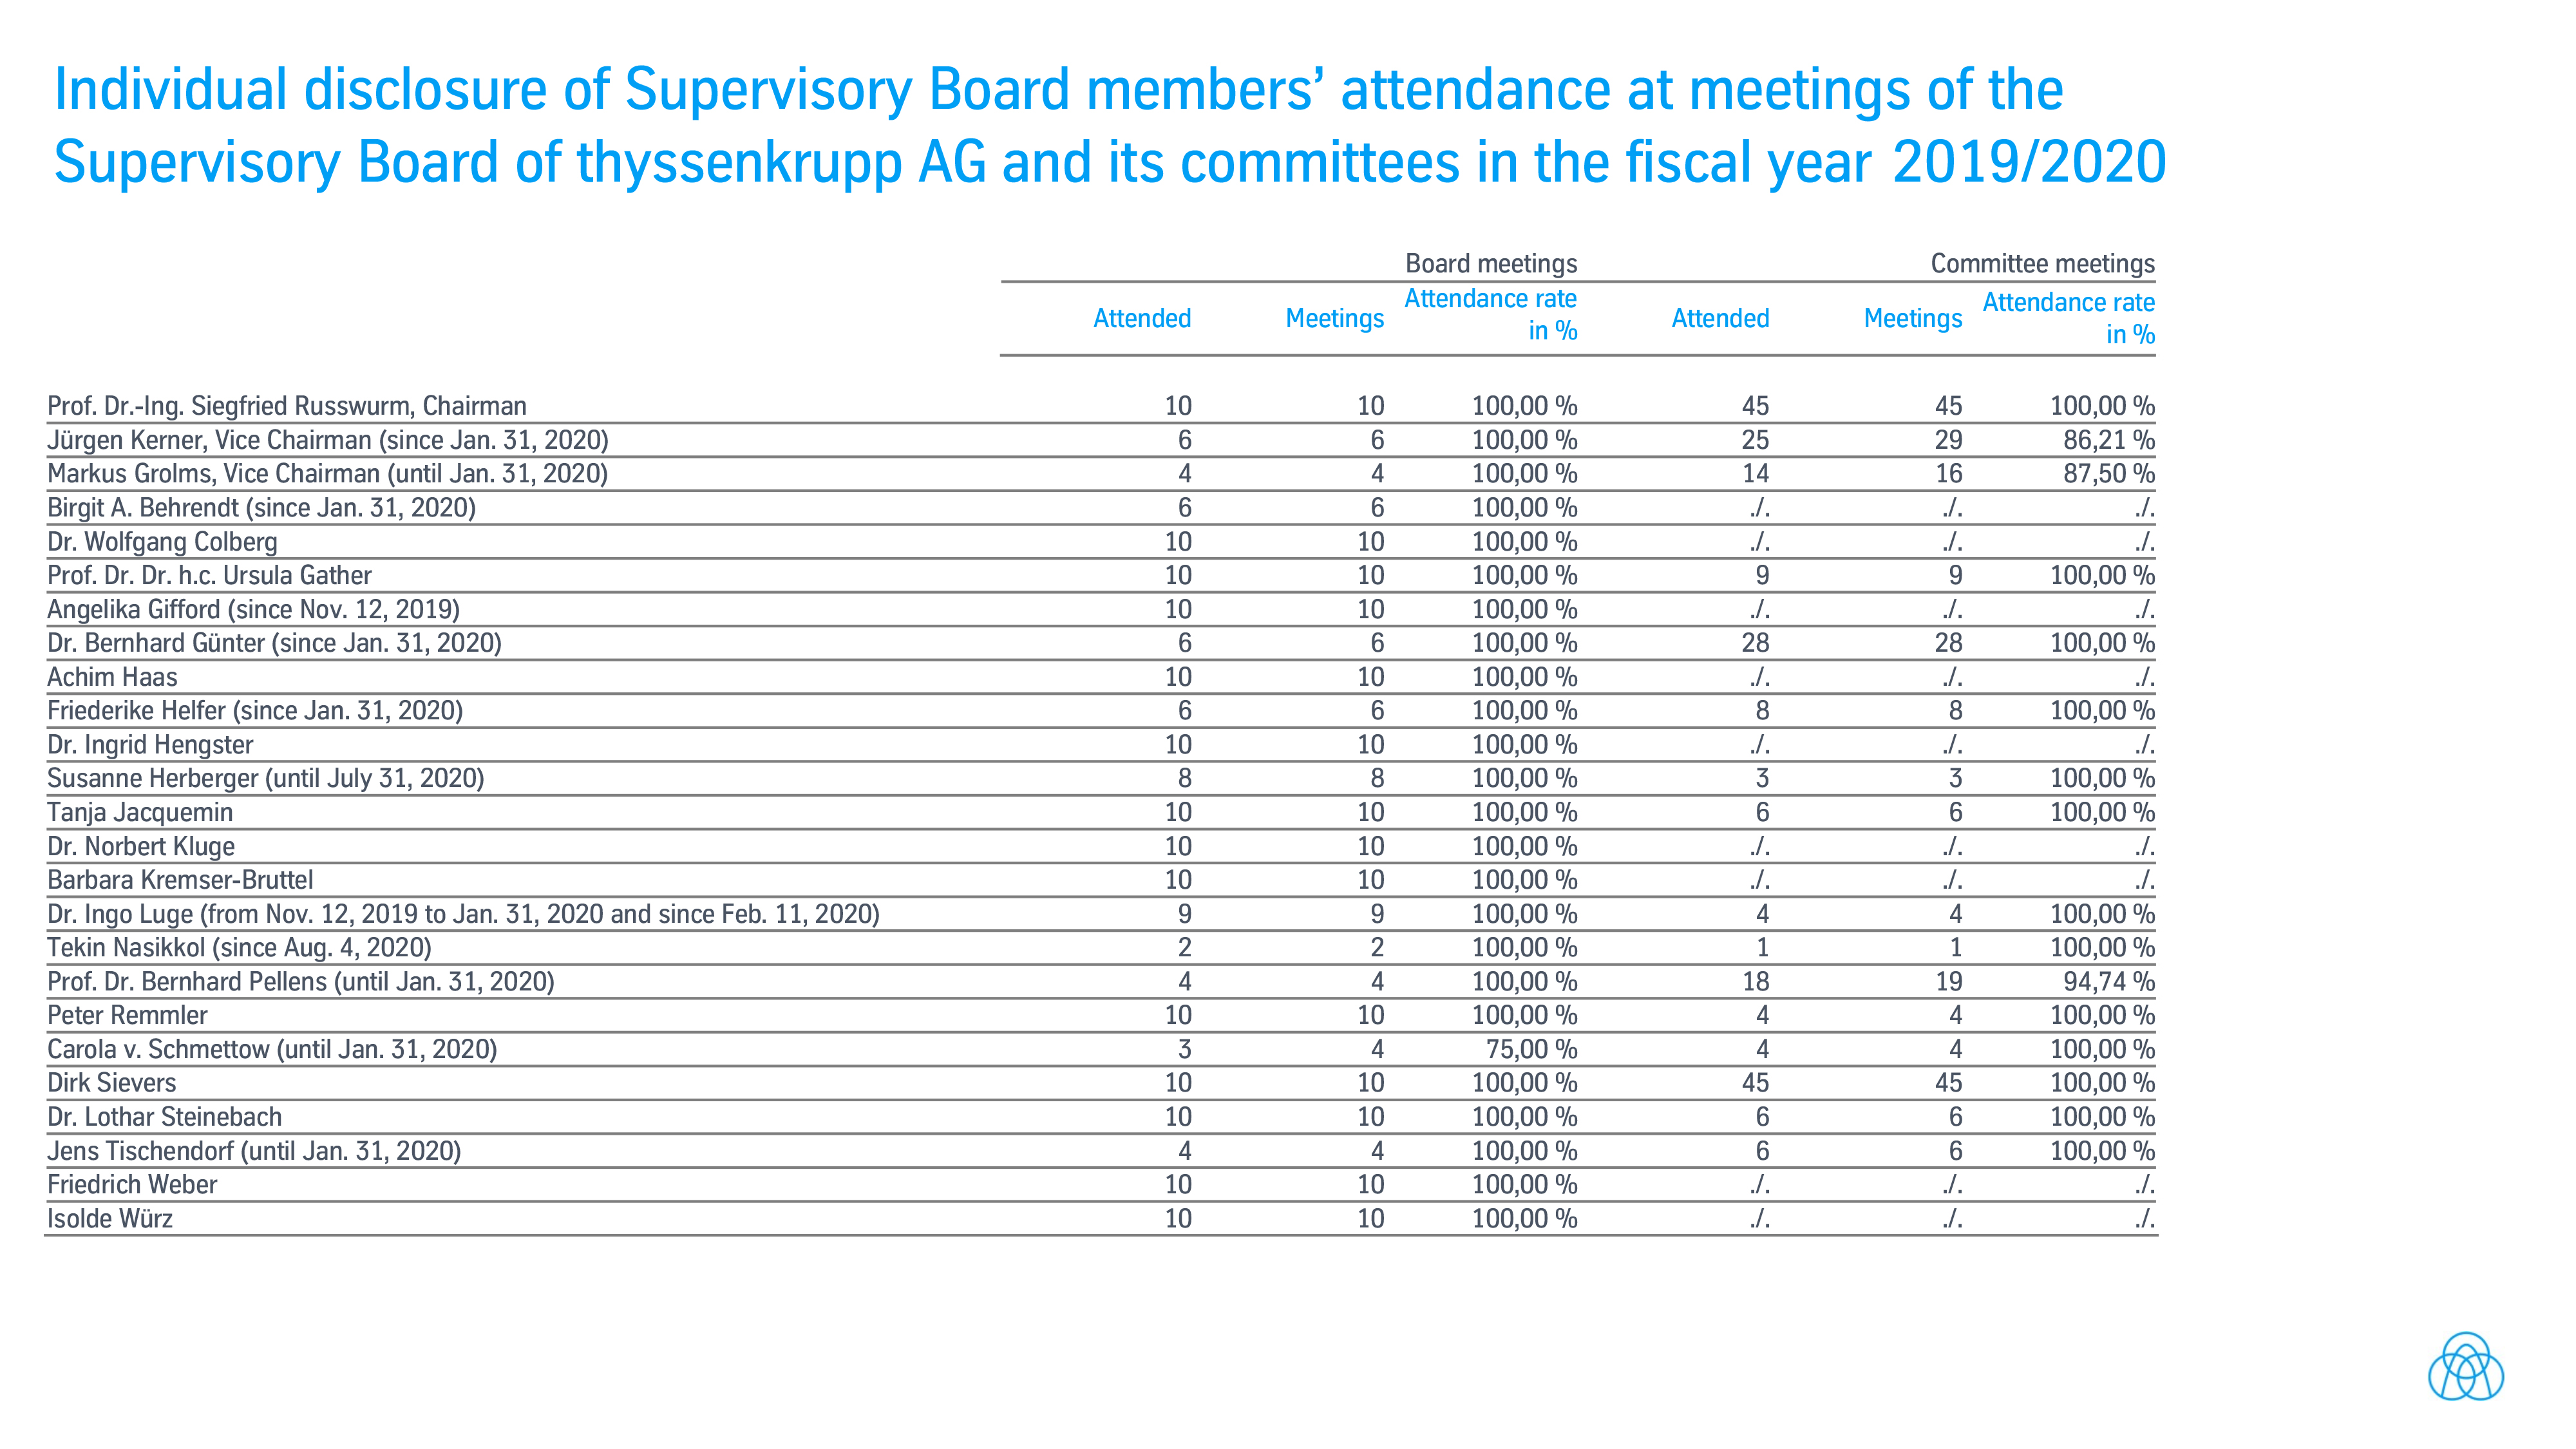 Attendance of supervisory board members